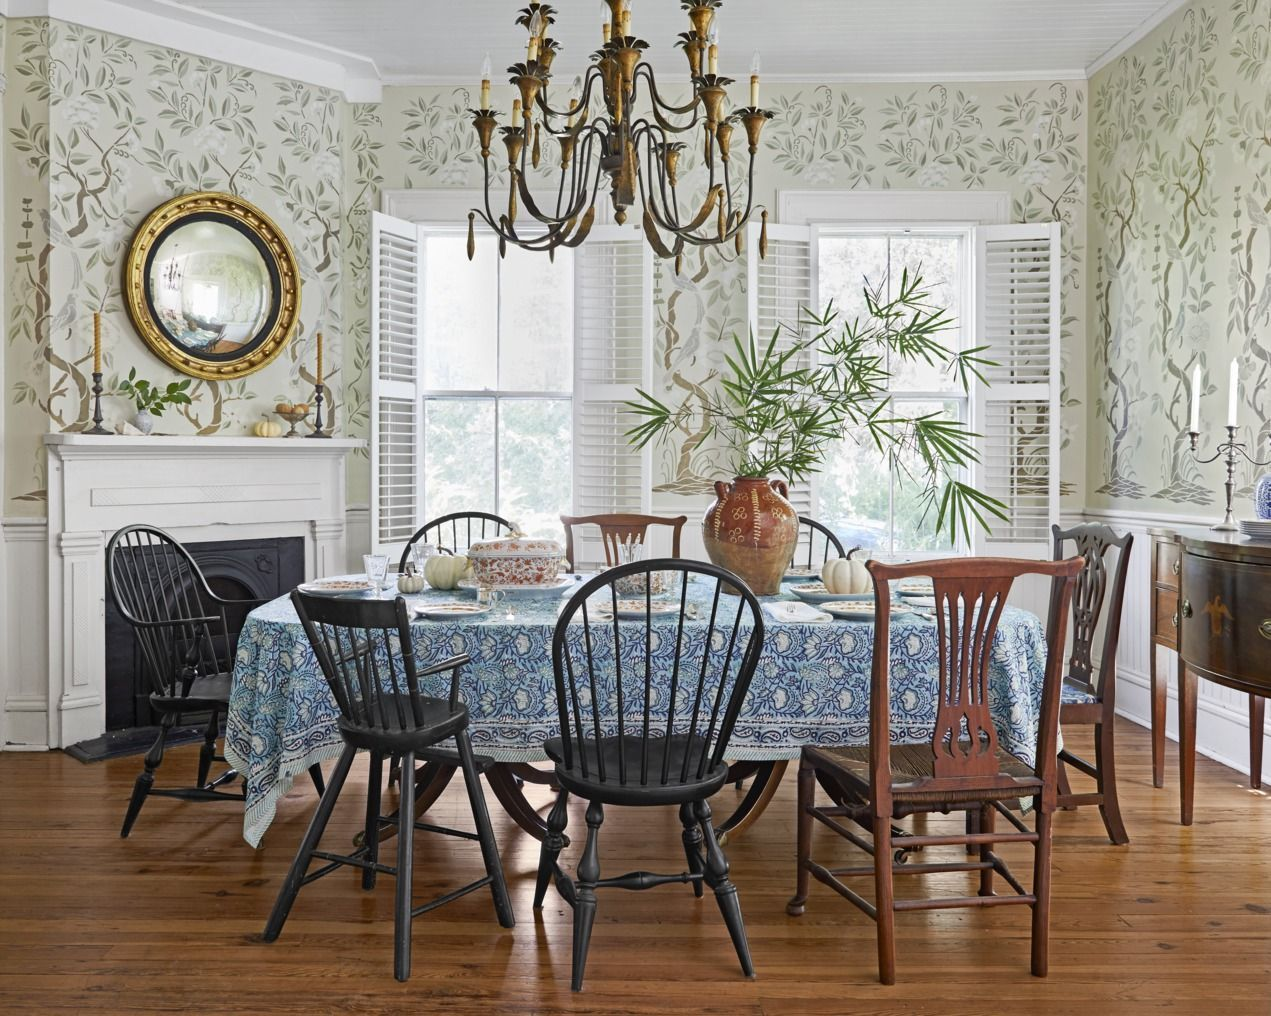 Fall Decorating Ideas To Turn Your Home Into A Seasonal Escape Dining Room Design Rustic Dining Room Dining Room Decor